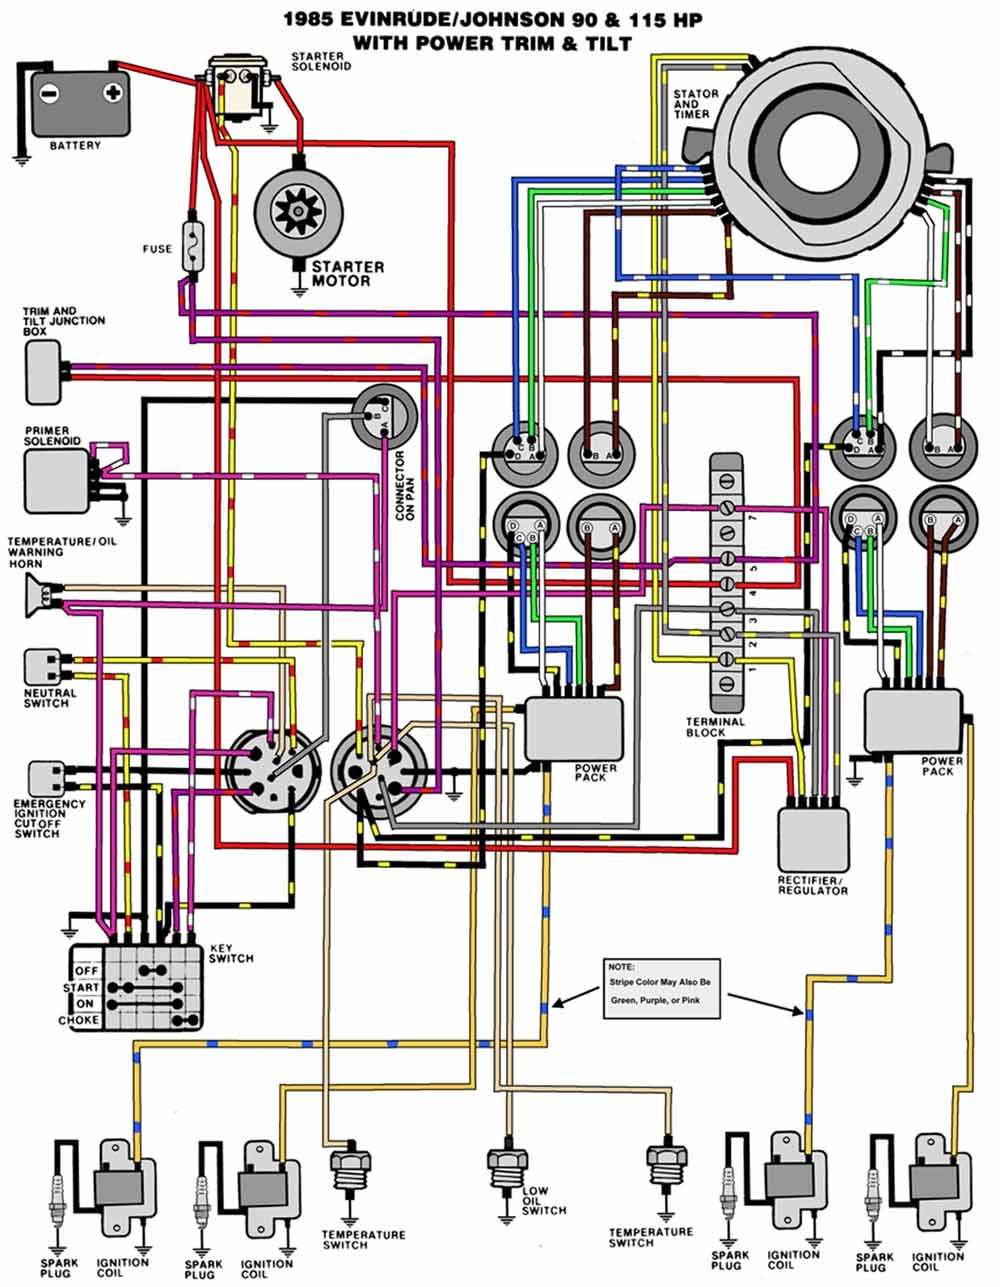 32 Johnson Outboard Ignition Switch Wiring Diagram